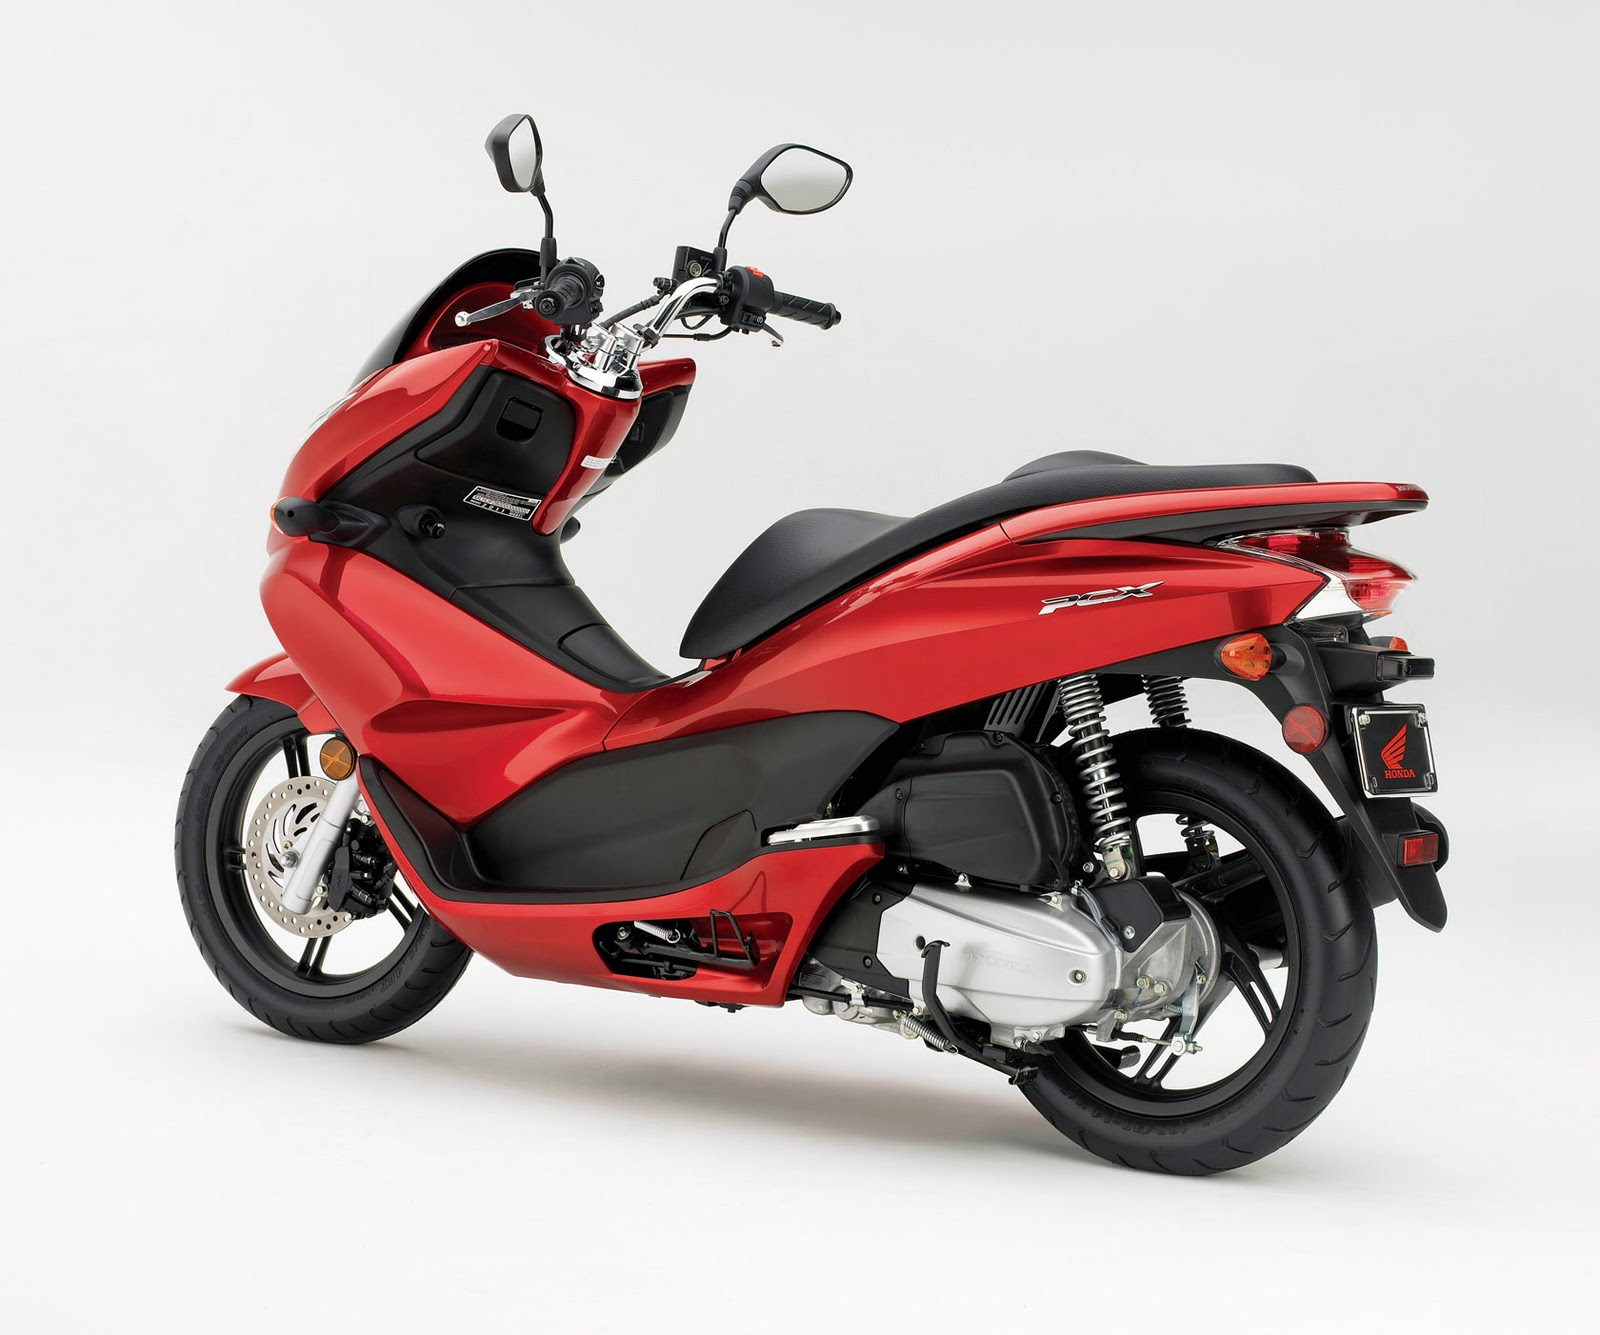 honda motorcycle pictures honda pcx 125 2011. Black Bedroom Furniture Sets. Home Design Ideas